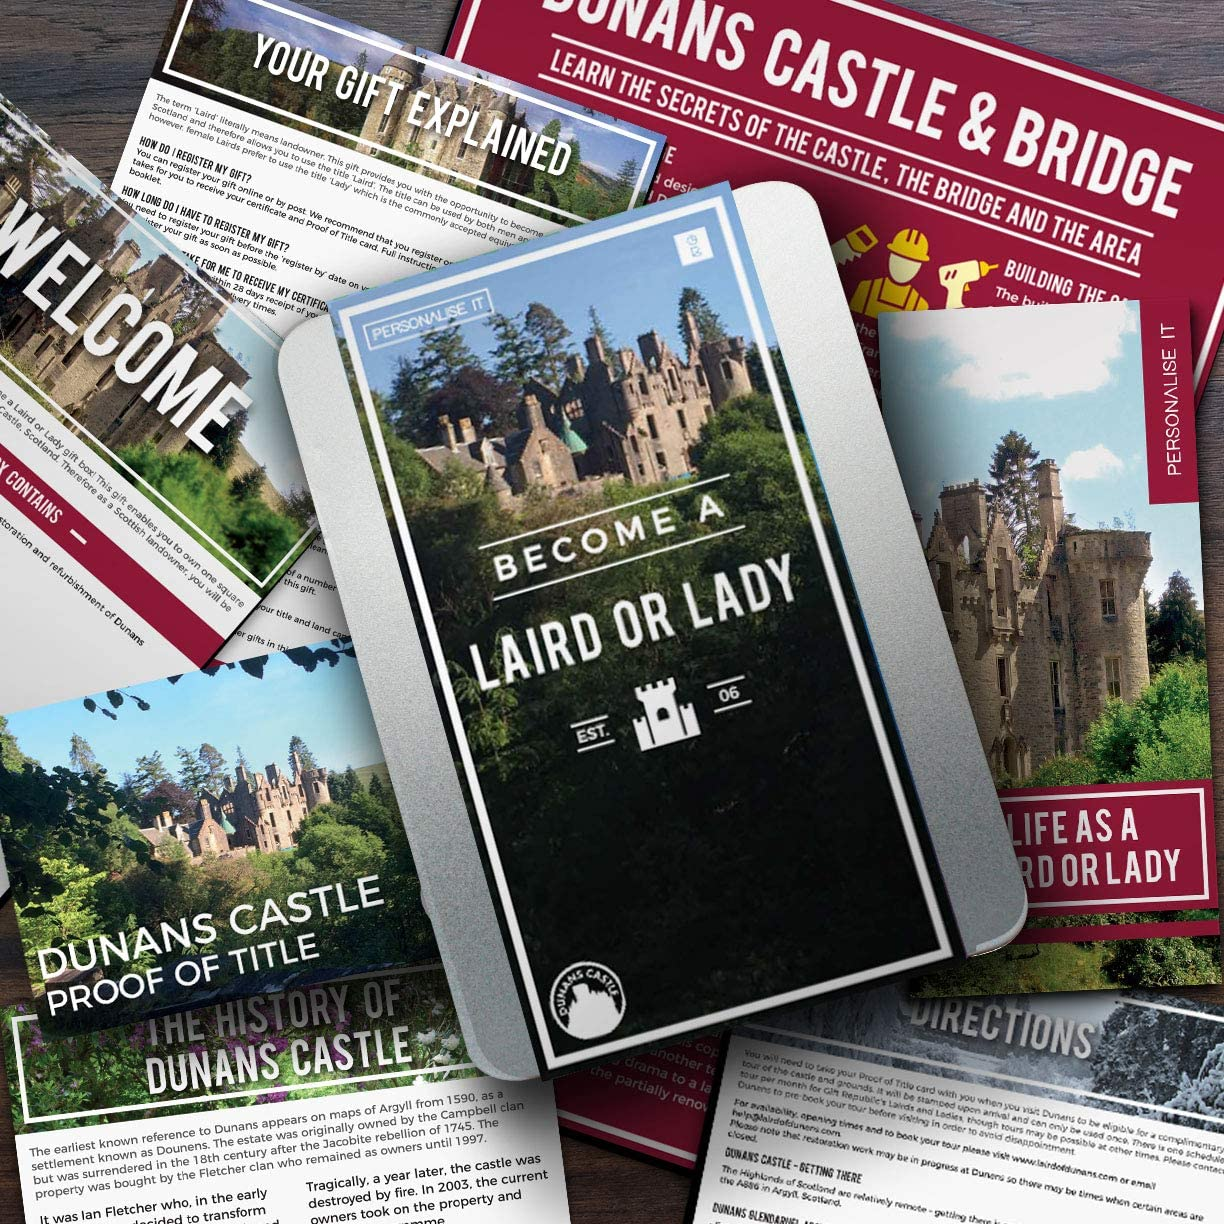 BECOME A SCOTTISH LORD UNIQUE GIFT IDEA LAIRD OR LADY